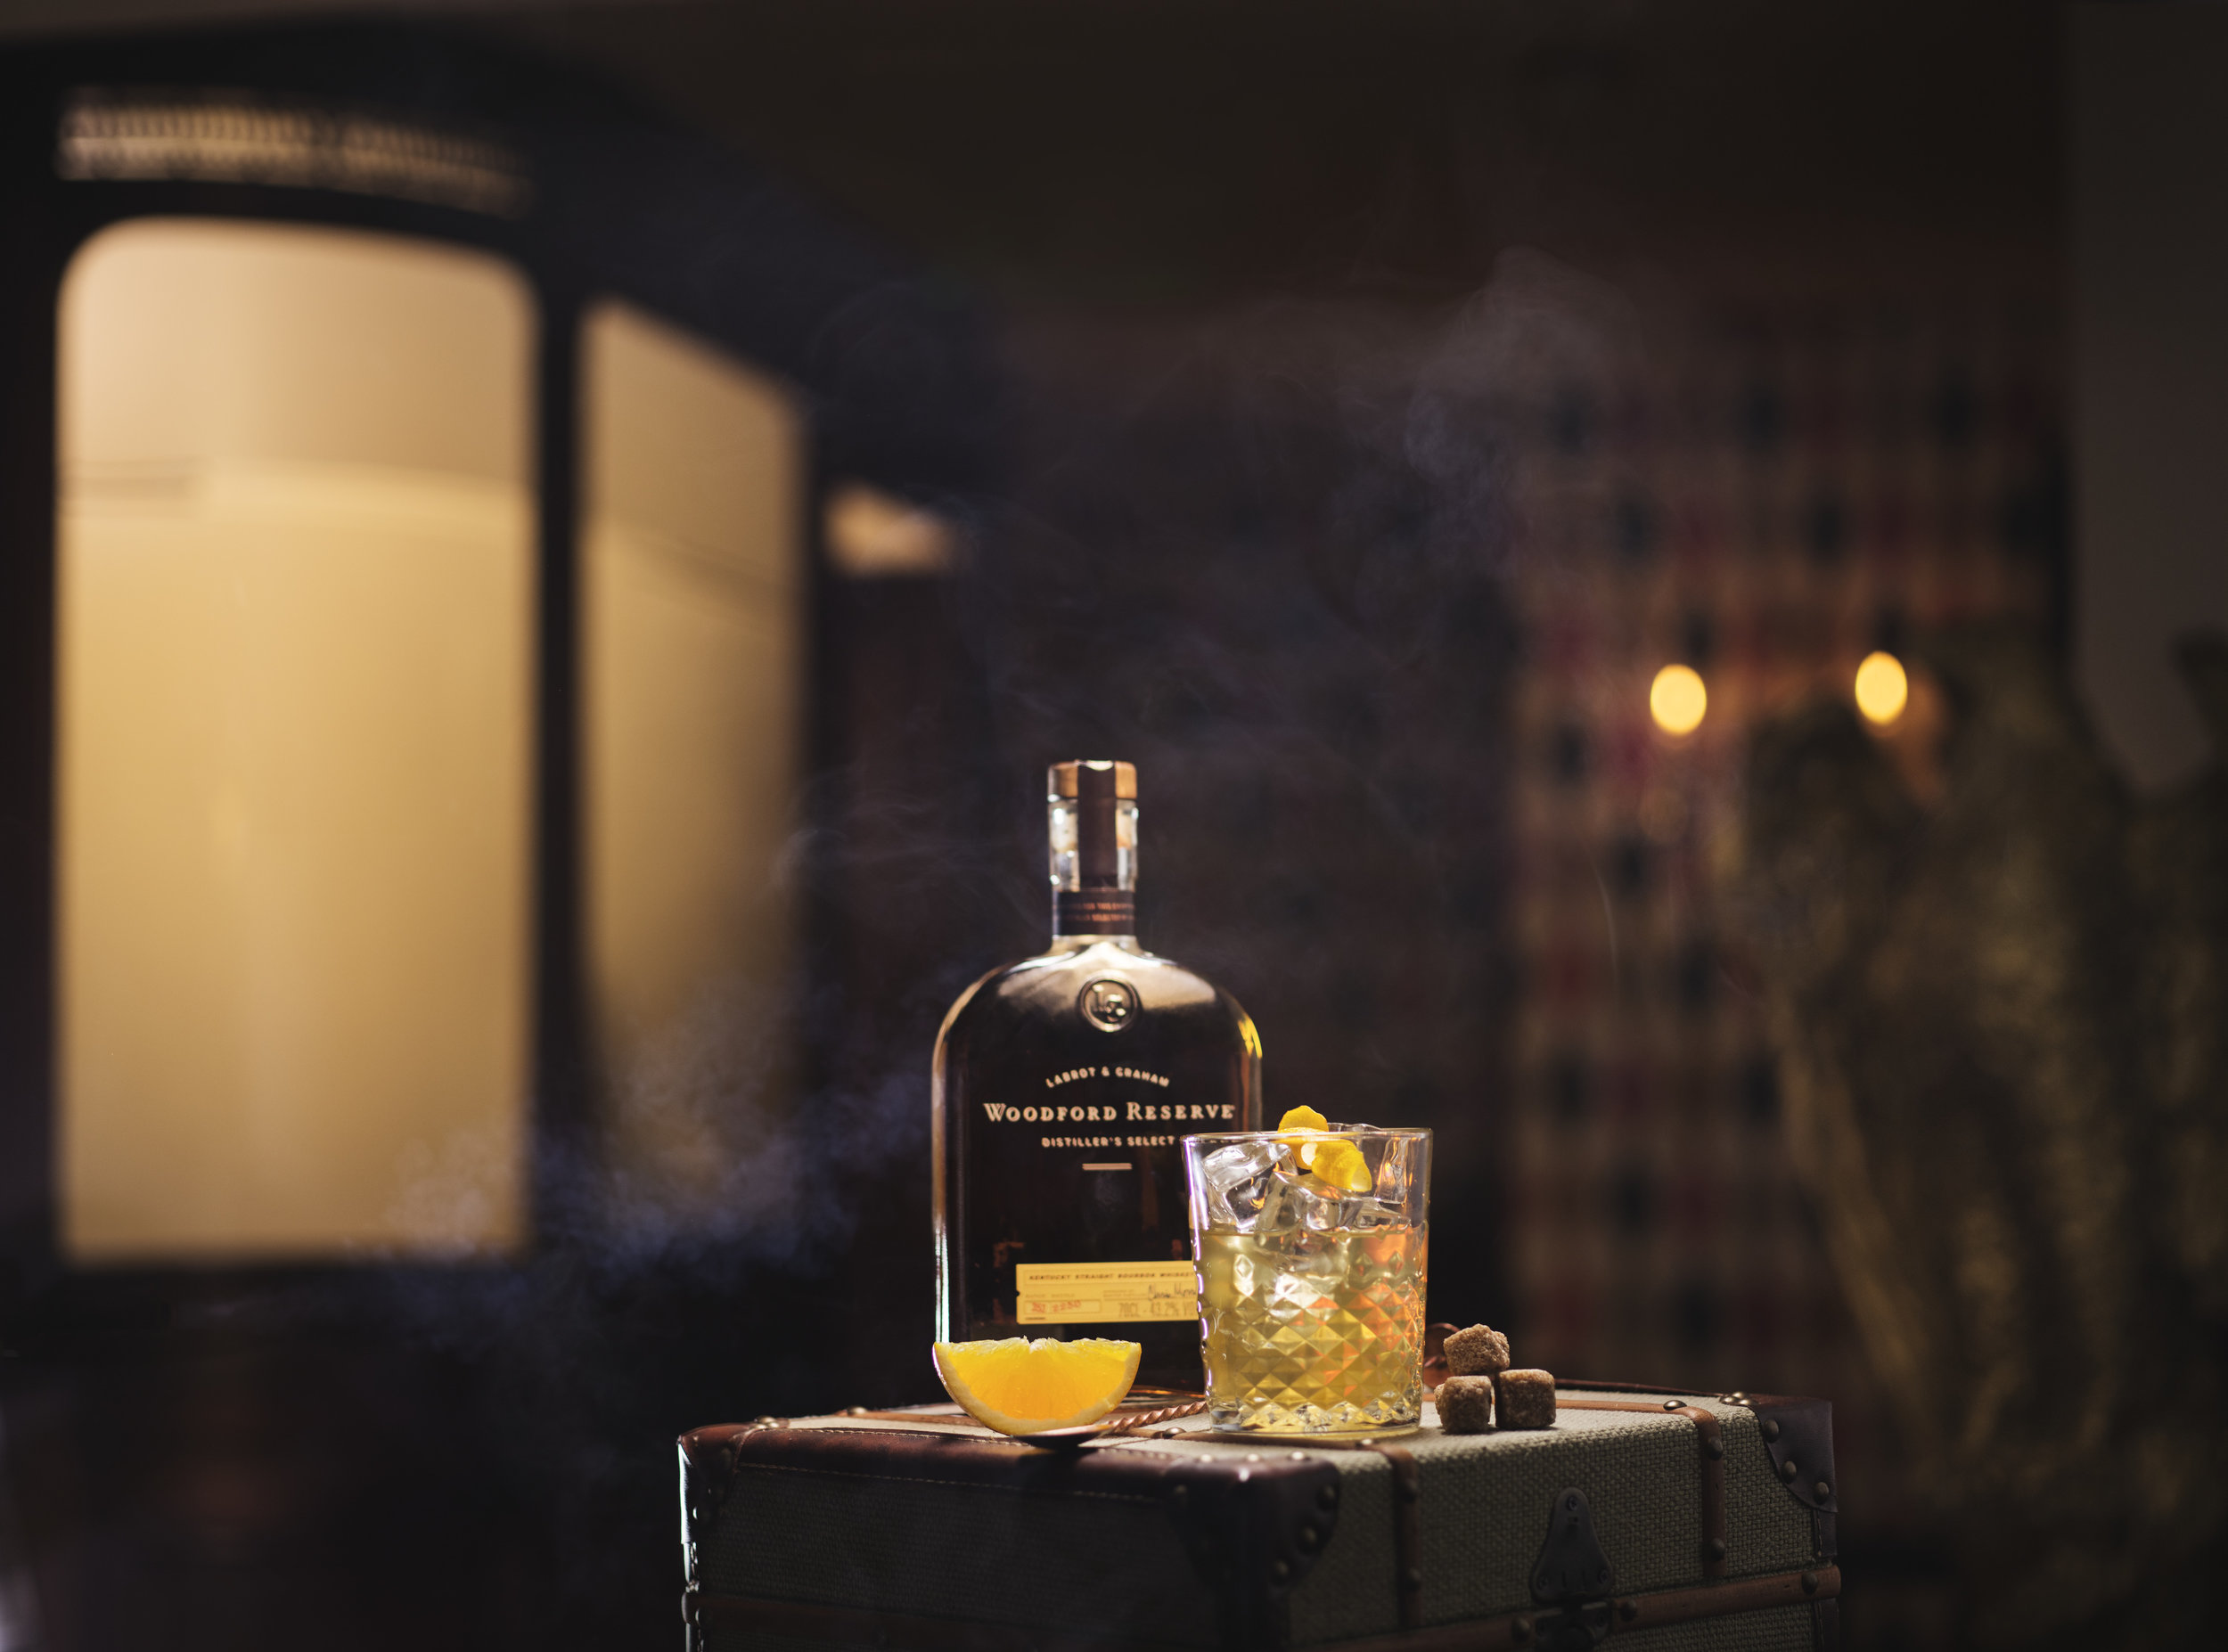 woodford reserve old fashioned cocktail with bourbon, still life cocktail drink shoot. advertising, packshot, candlelit and cosy. lifestyle campaign images with atmosphere. Whisky, vodka, coffee, interior shots.